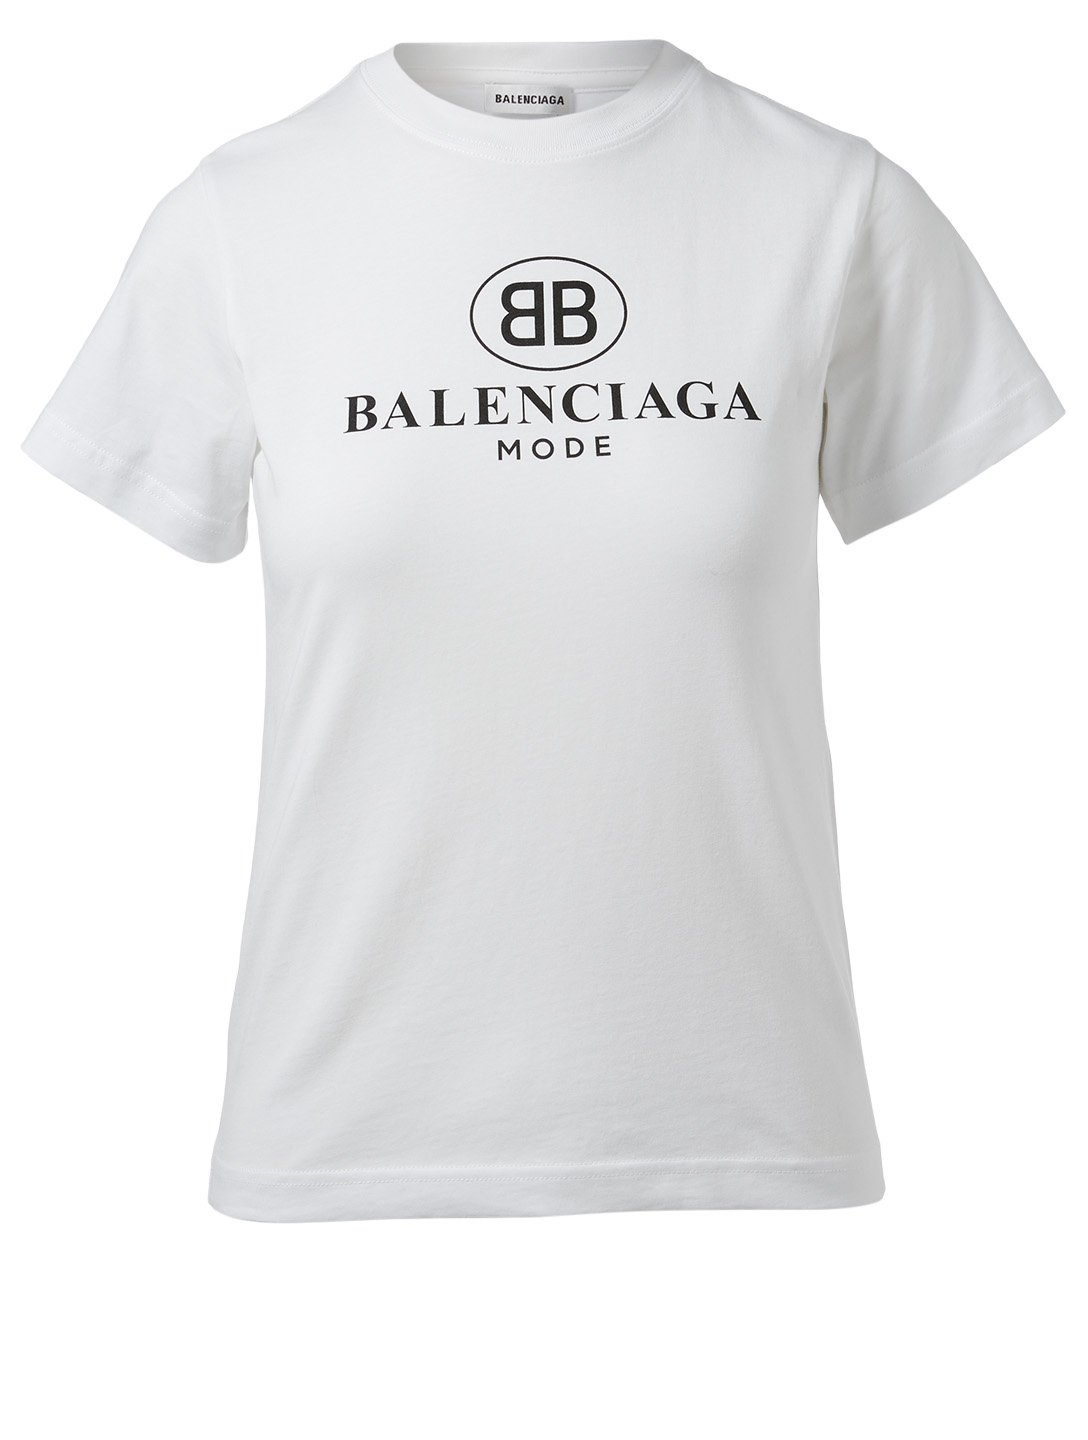 BALENCIAGA BB Mode Logo T-Shirt Women's White